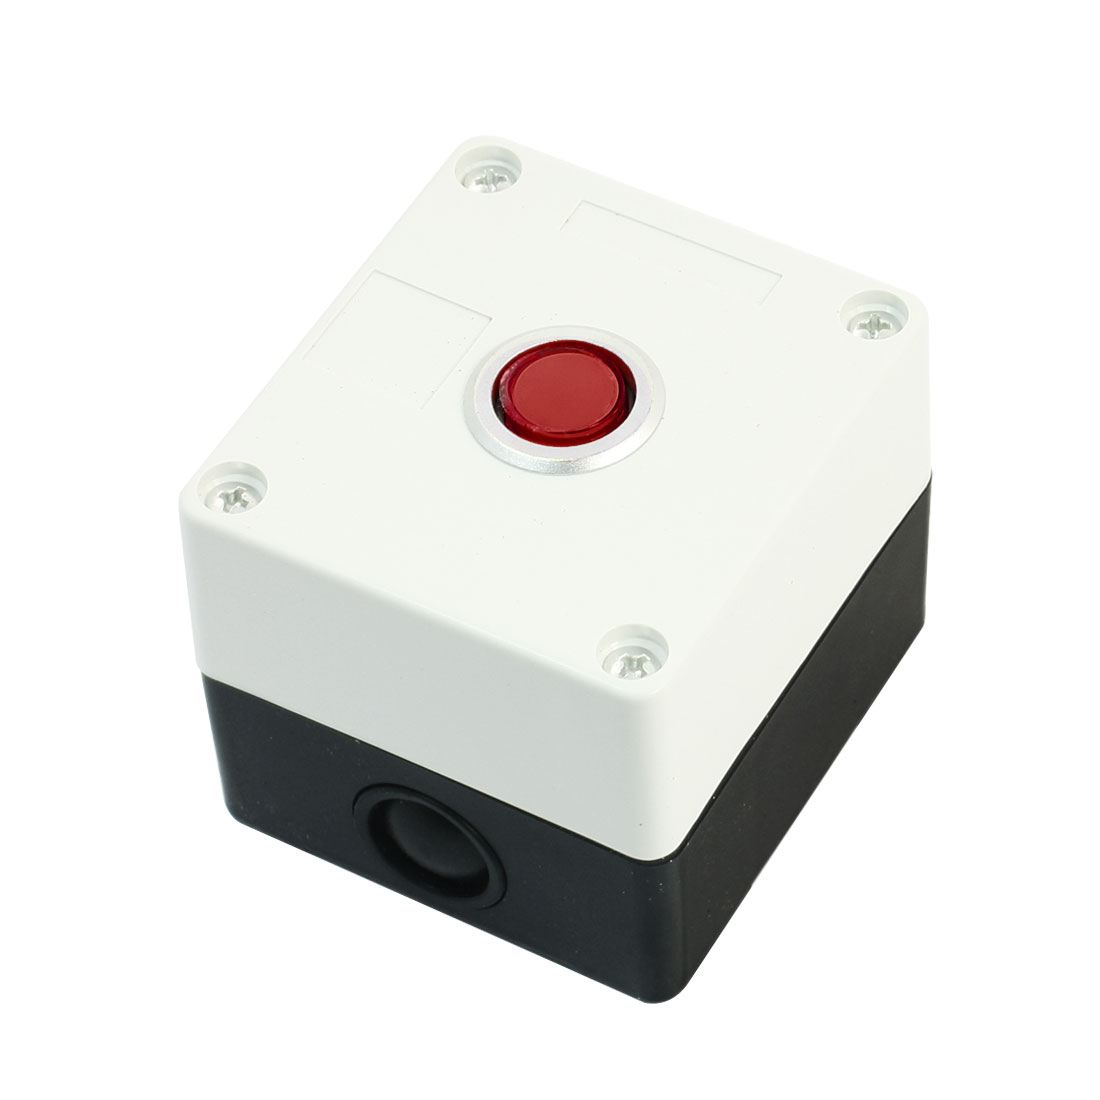 AC220V 5A Red Pilot Lamp SPDT 1NO 1NC 5-Pin Locking Round Button Rectangle Plastic Push Button Station Switch Control Box